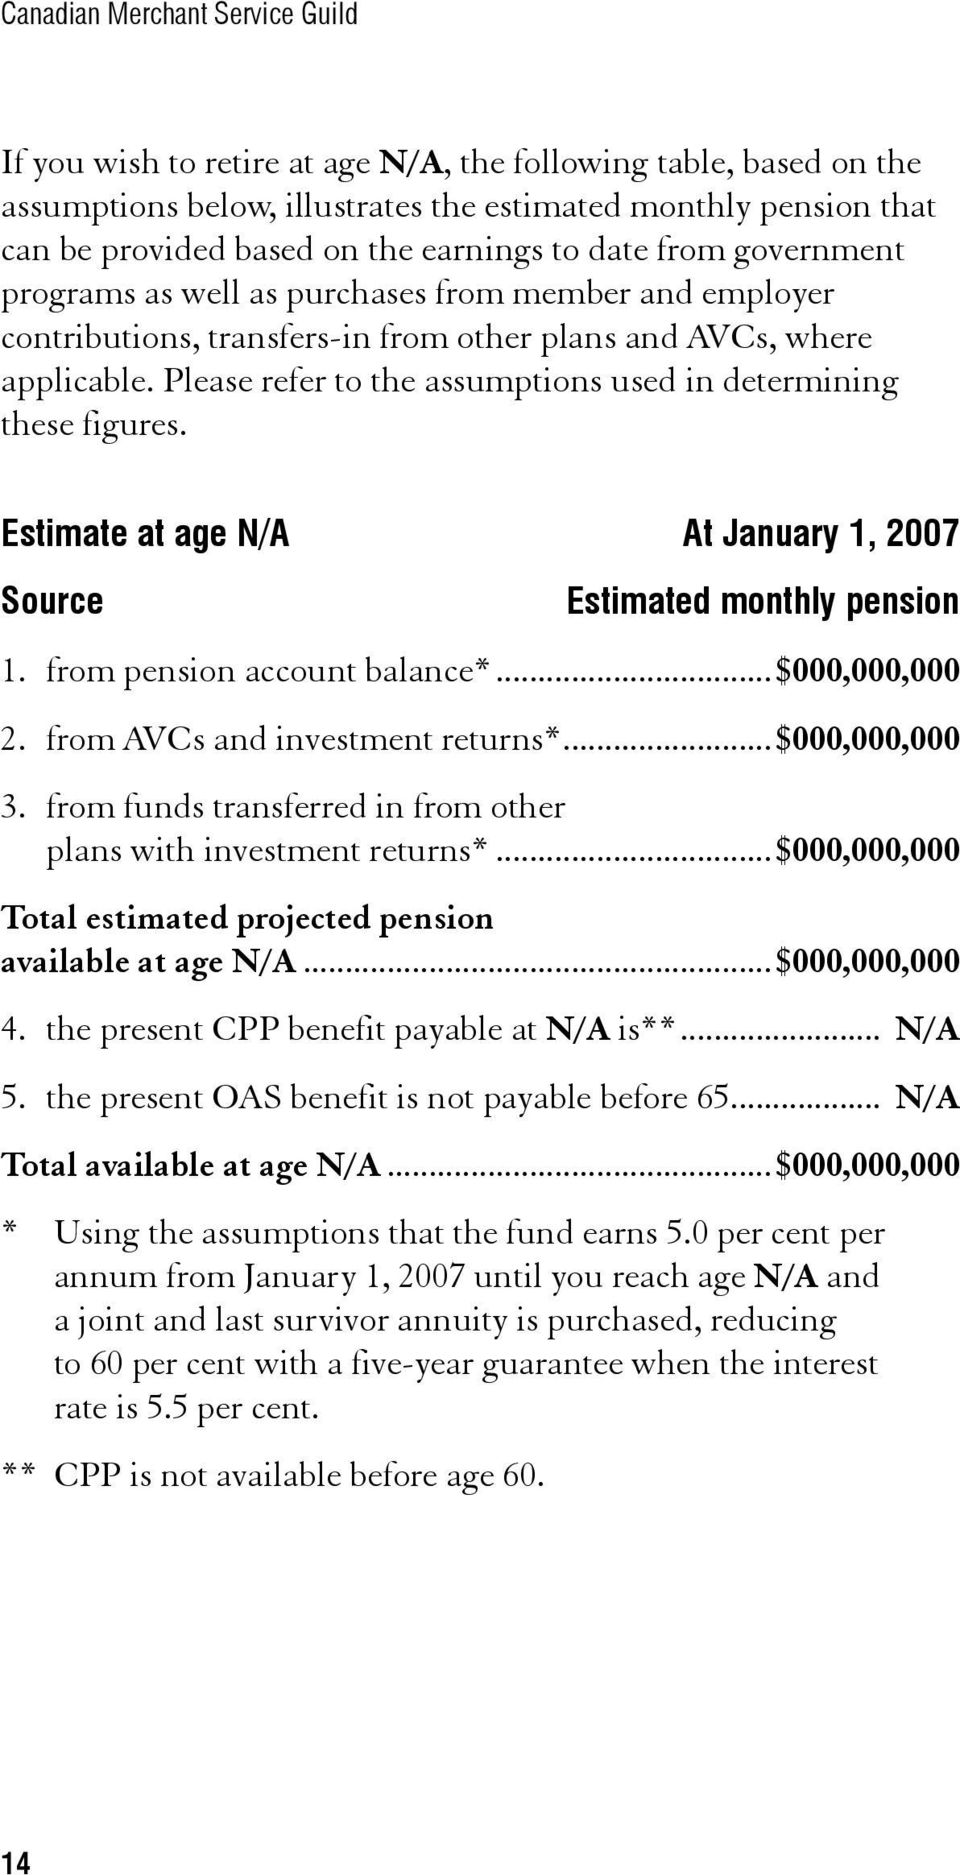 Please refer to the assumptions used in determining these figures. Estimate at age N/A At January 1, 2007 Source Estimated monthly pension 1. from pension account balance*...$000,000,000 2.